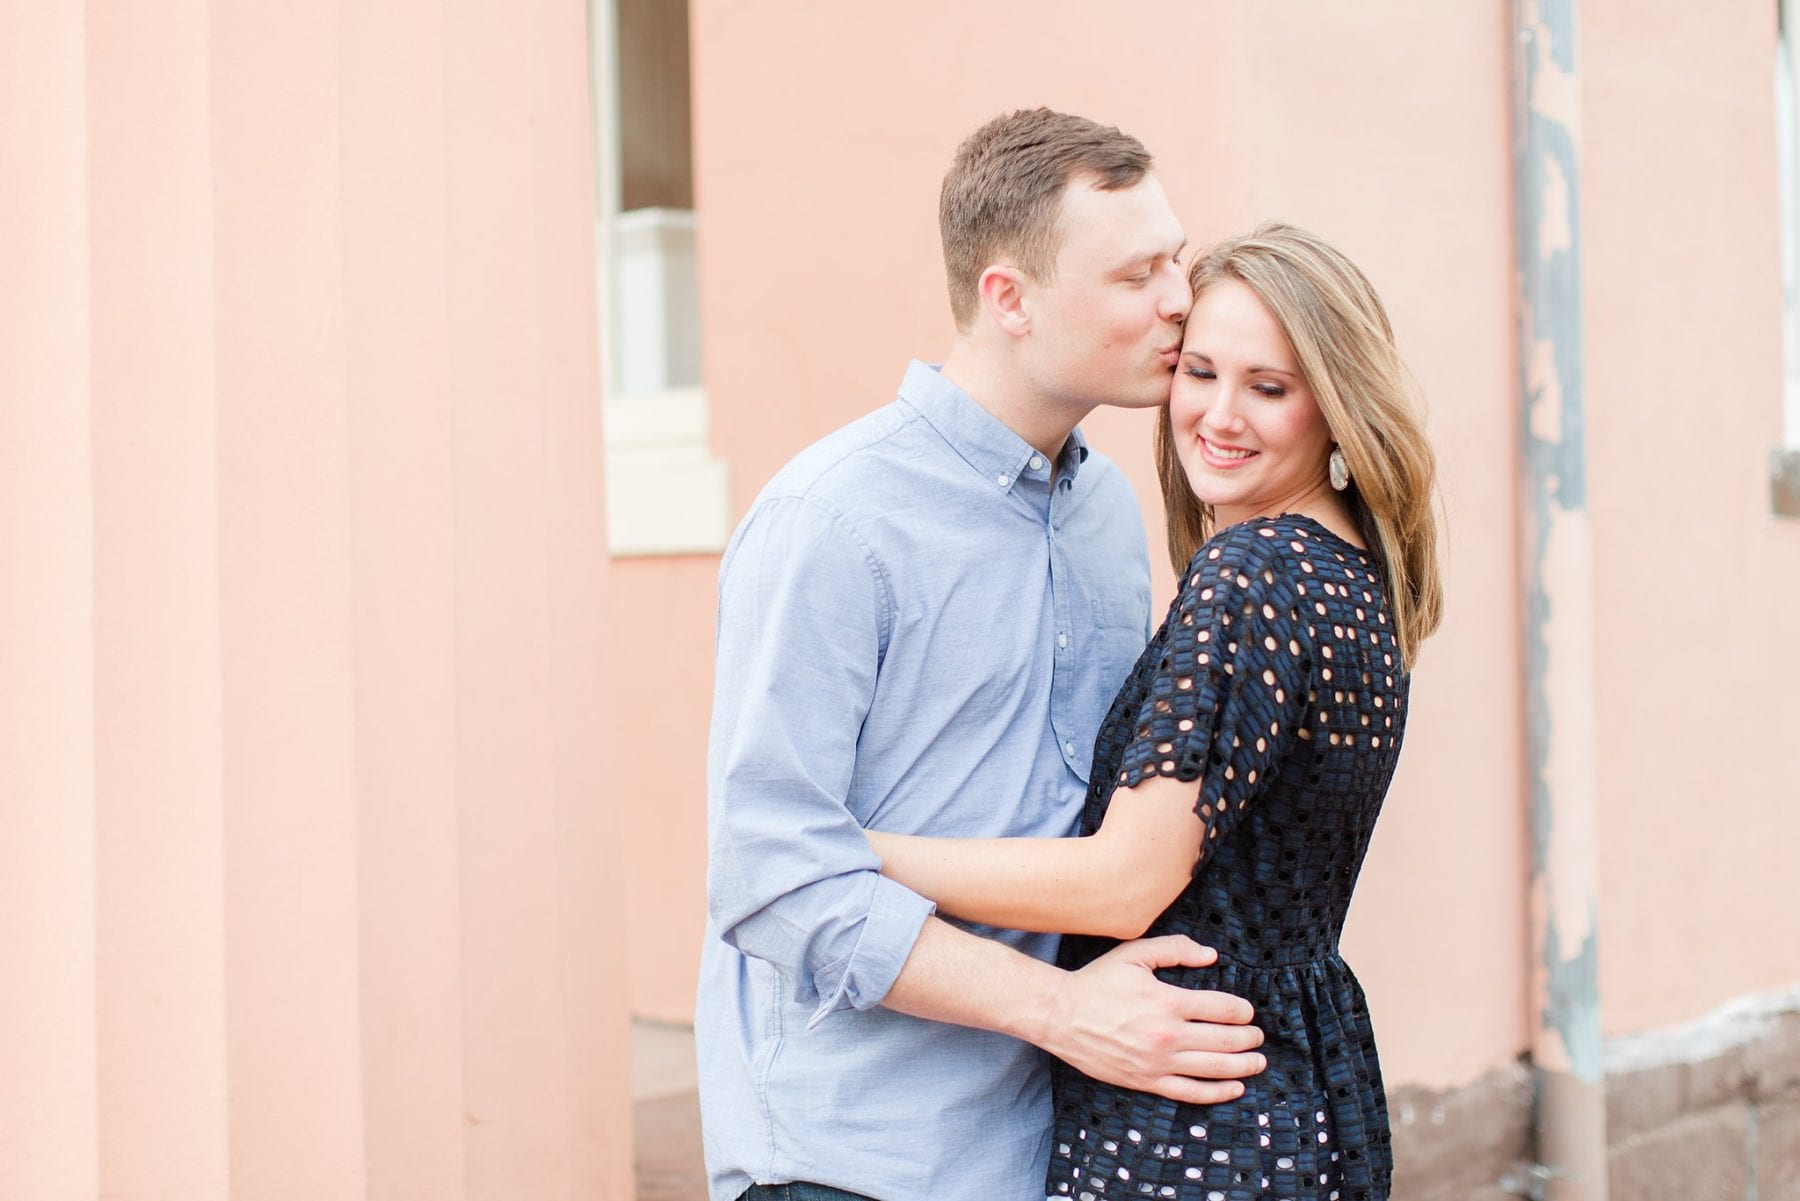 Springtime Old Town Alexandria Engagement Session Matt & Maxie Megan Kelsey Photography-207.jpg